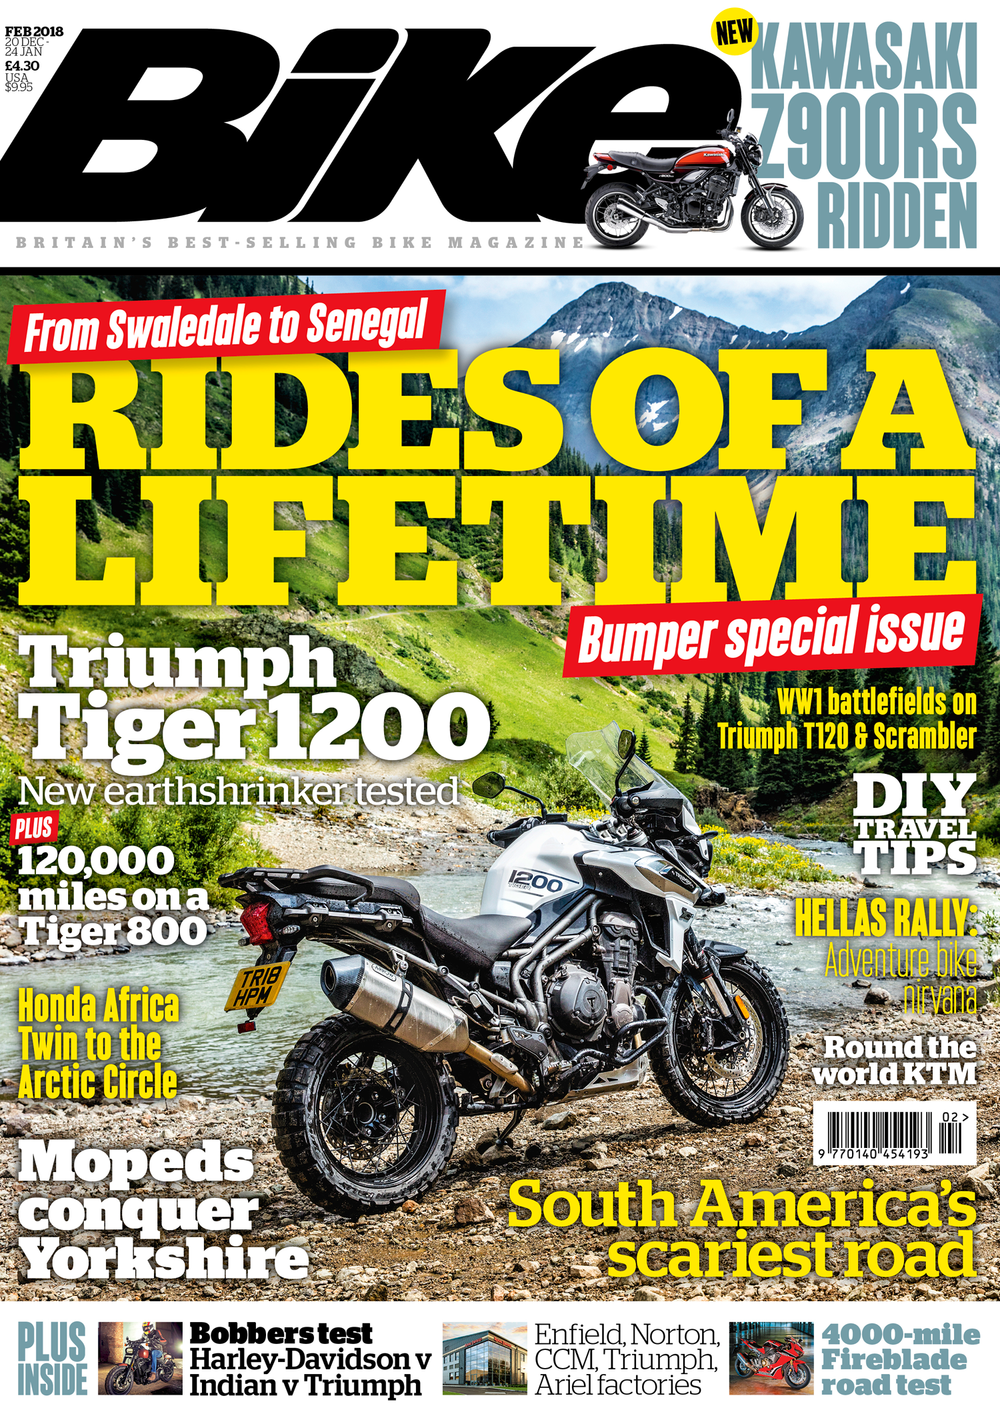 Bike February 2018 issue